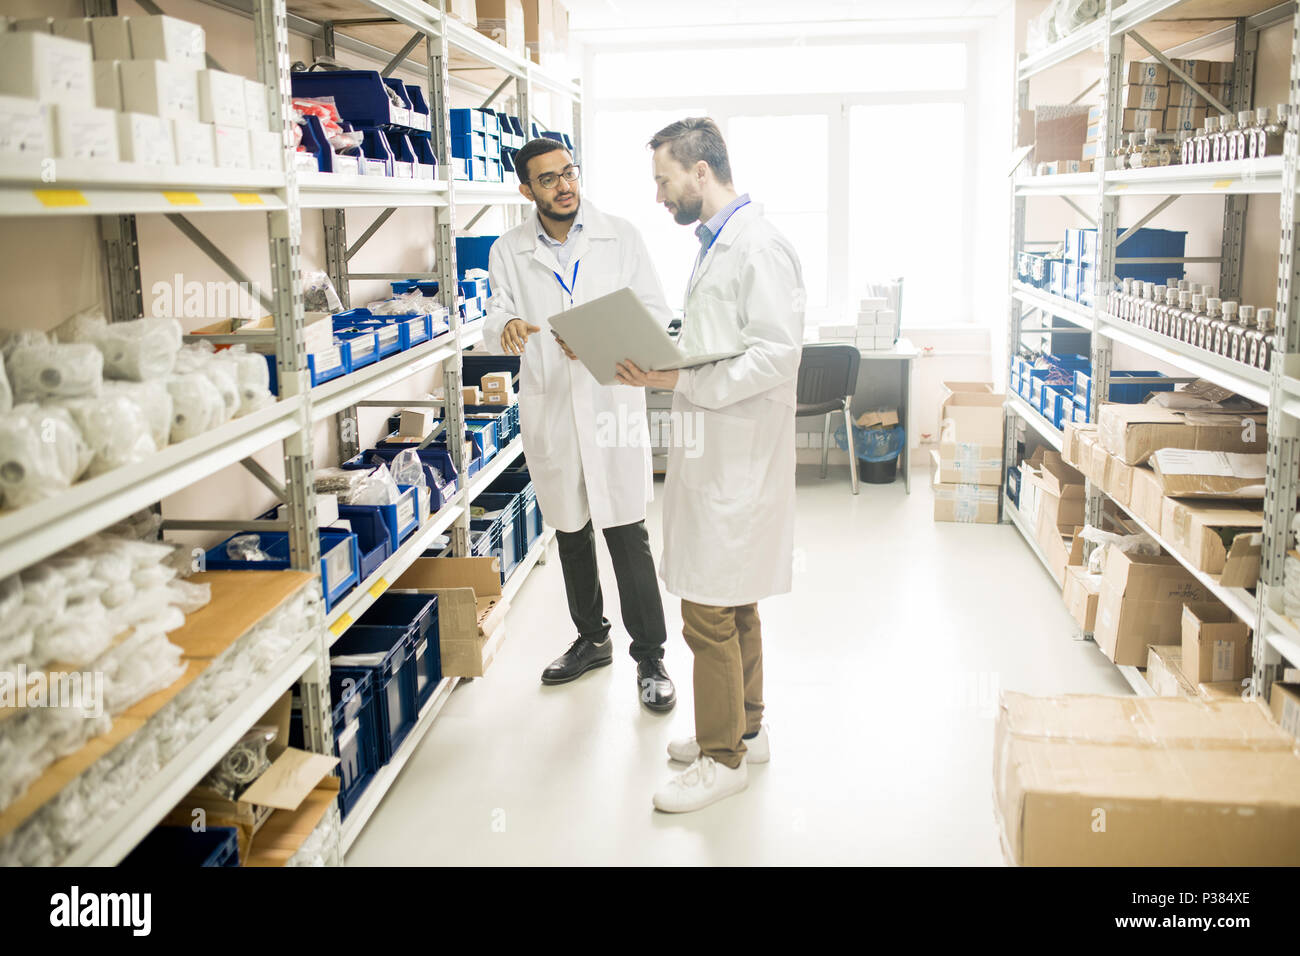 Discussing Quality of Measuring Equipment - Stock Image